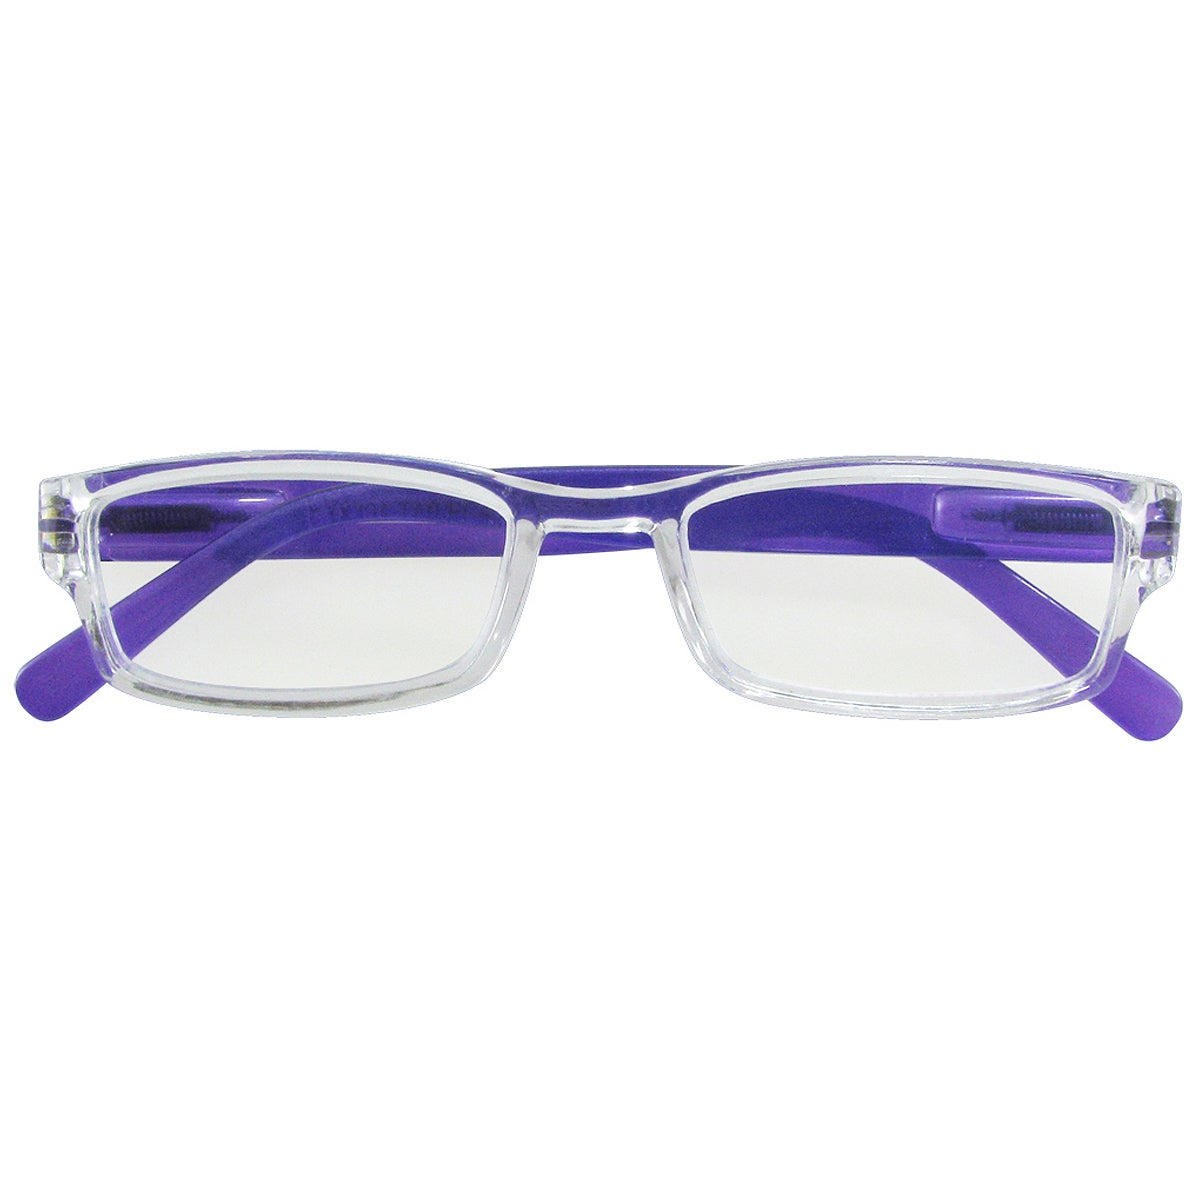 E-specs by Evolutioneyes Purple Computer Glasses